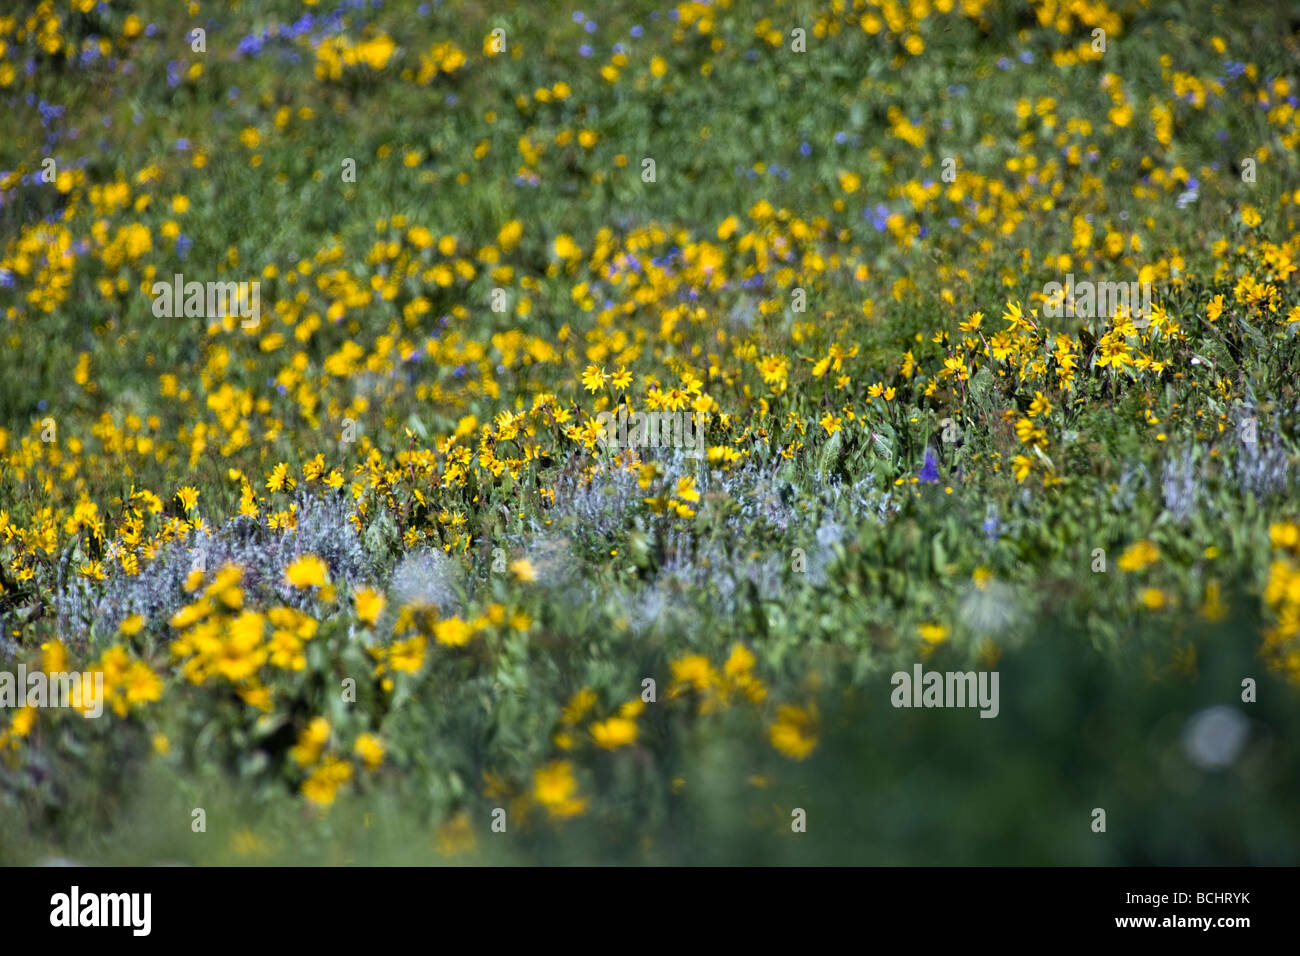 Mules Ear Aspen Sunflowers and Blue Flax below Snodgrass Mountain near Mount Crested Butte Colorado USA - Stock Image